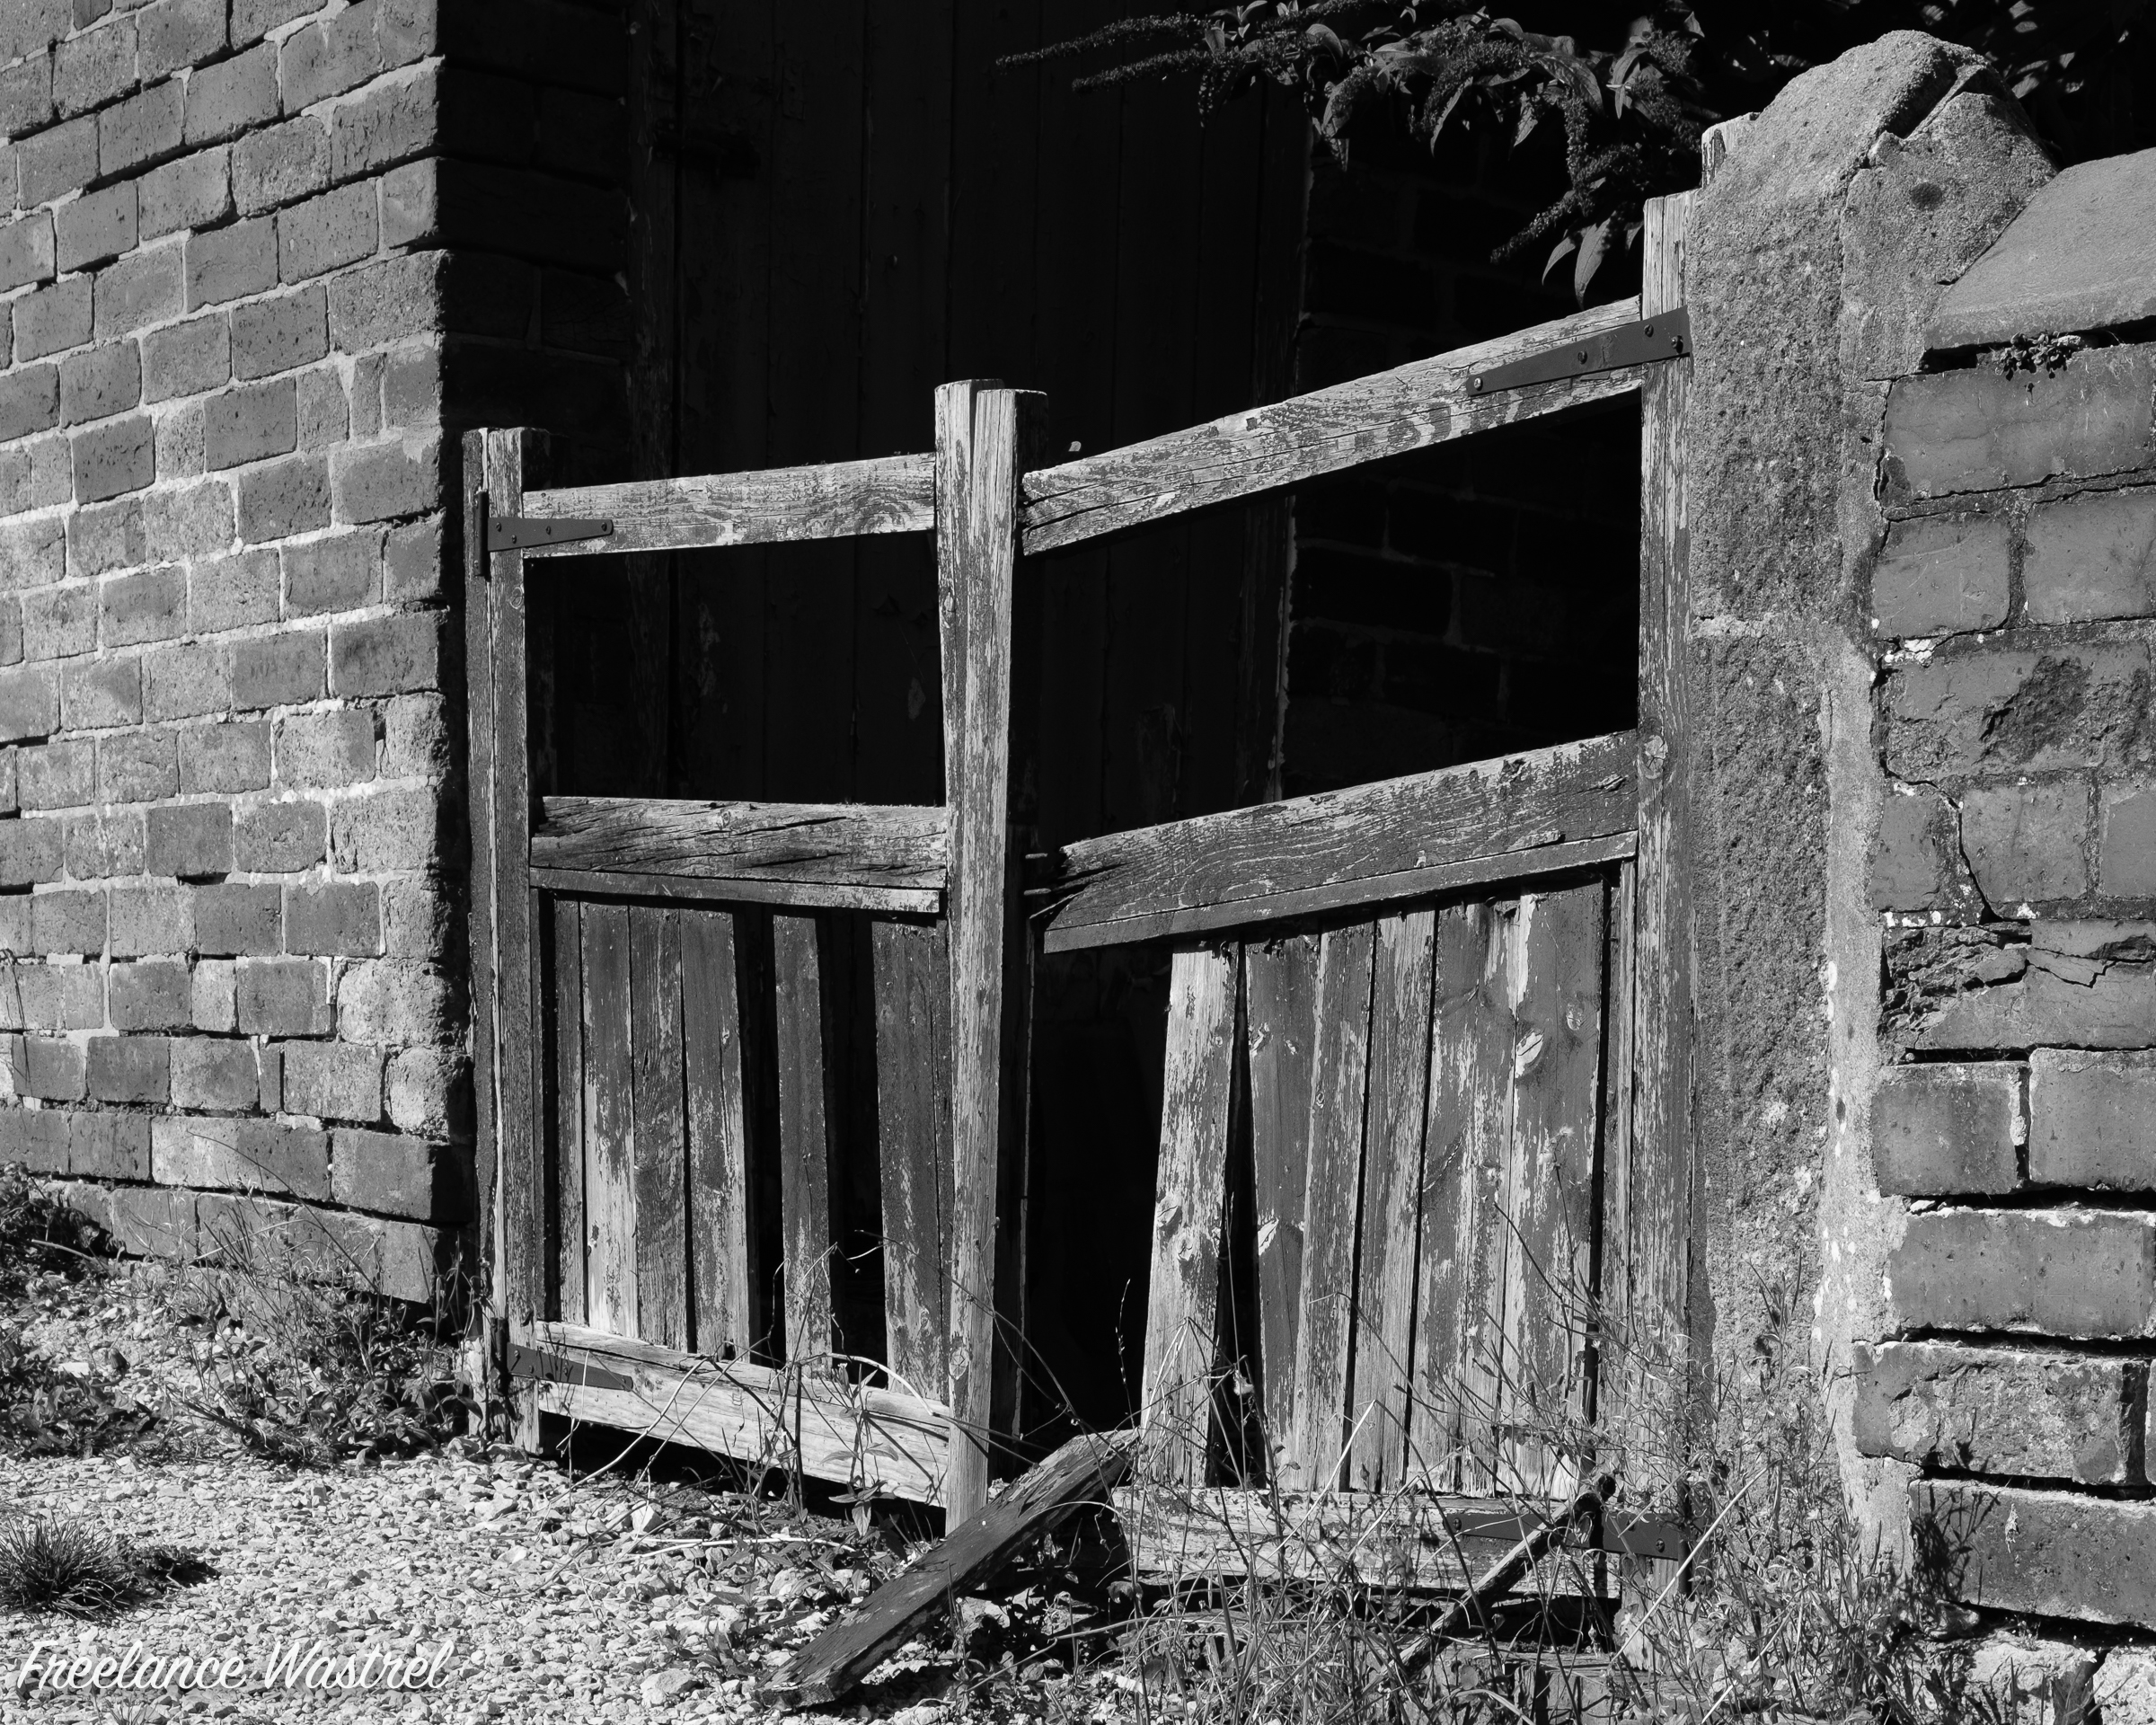 Gated but dilapidated…